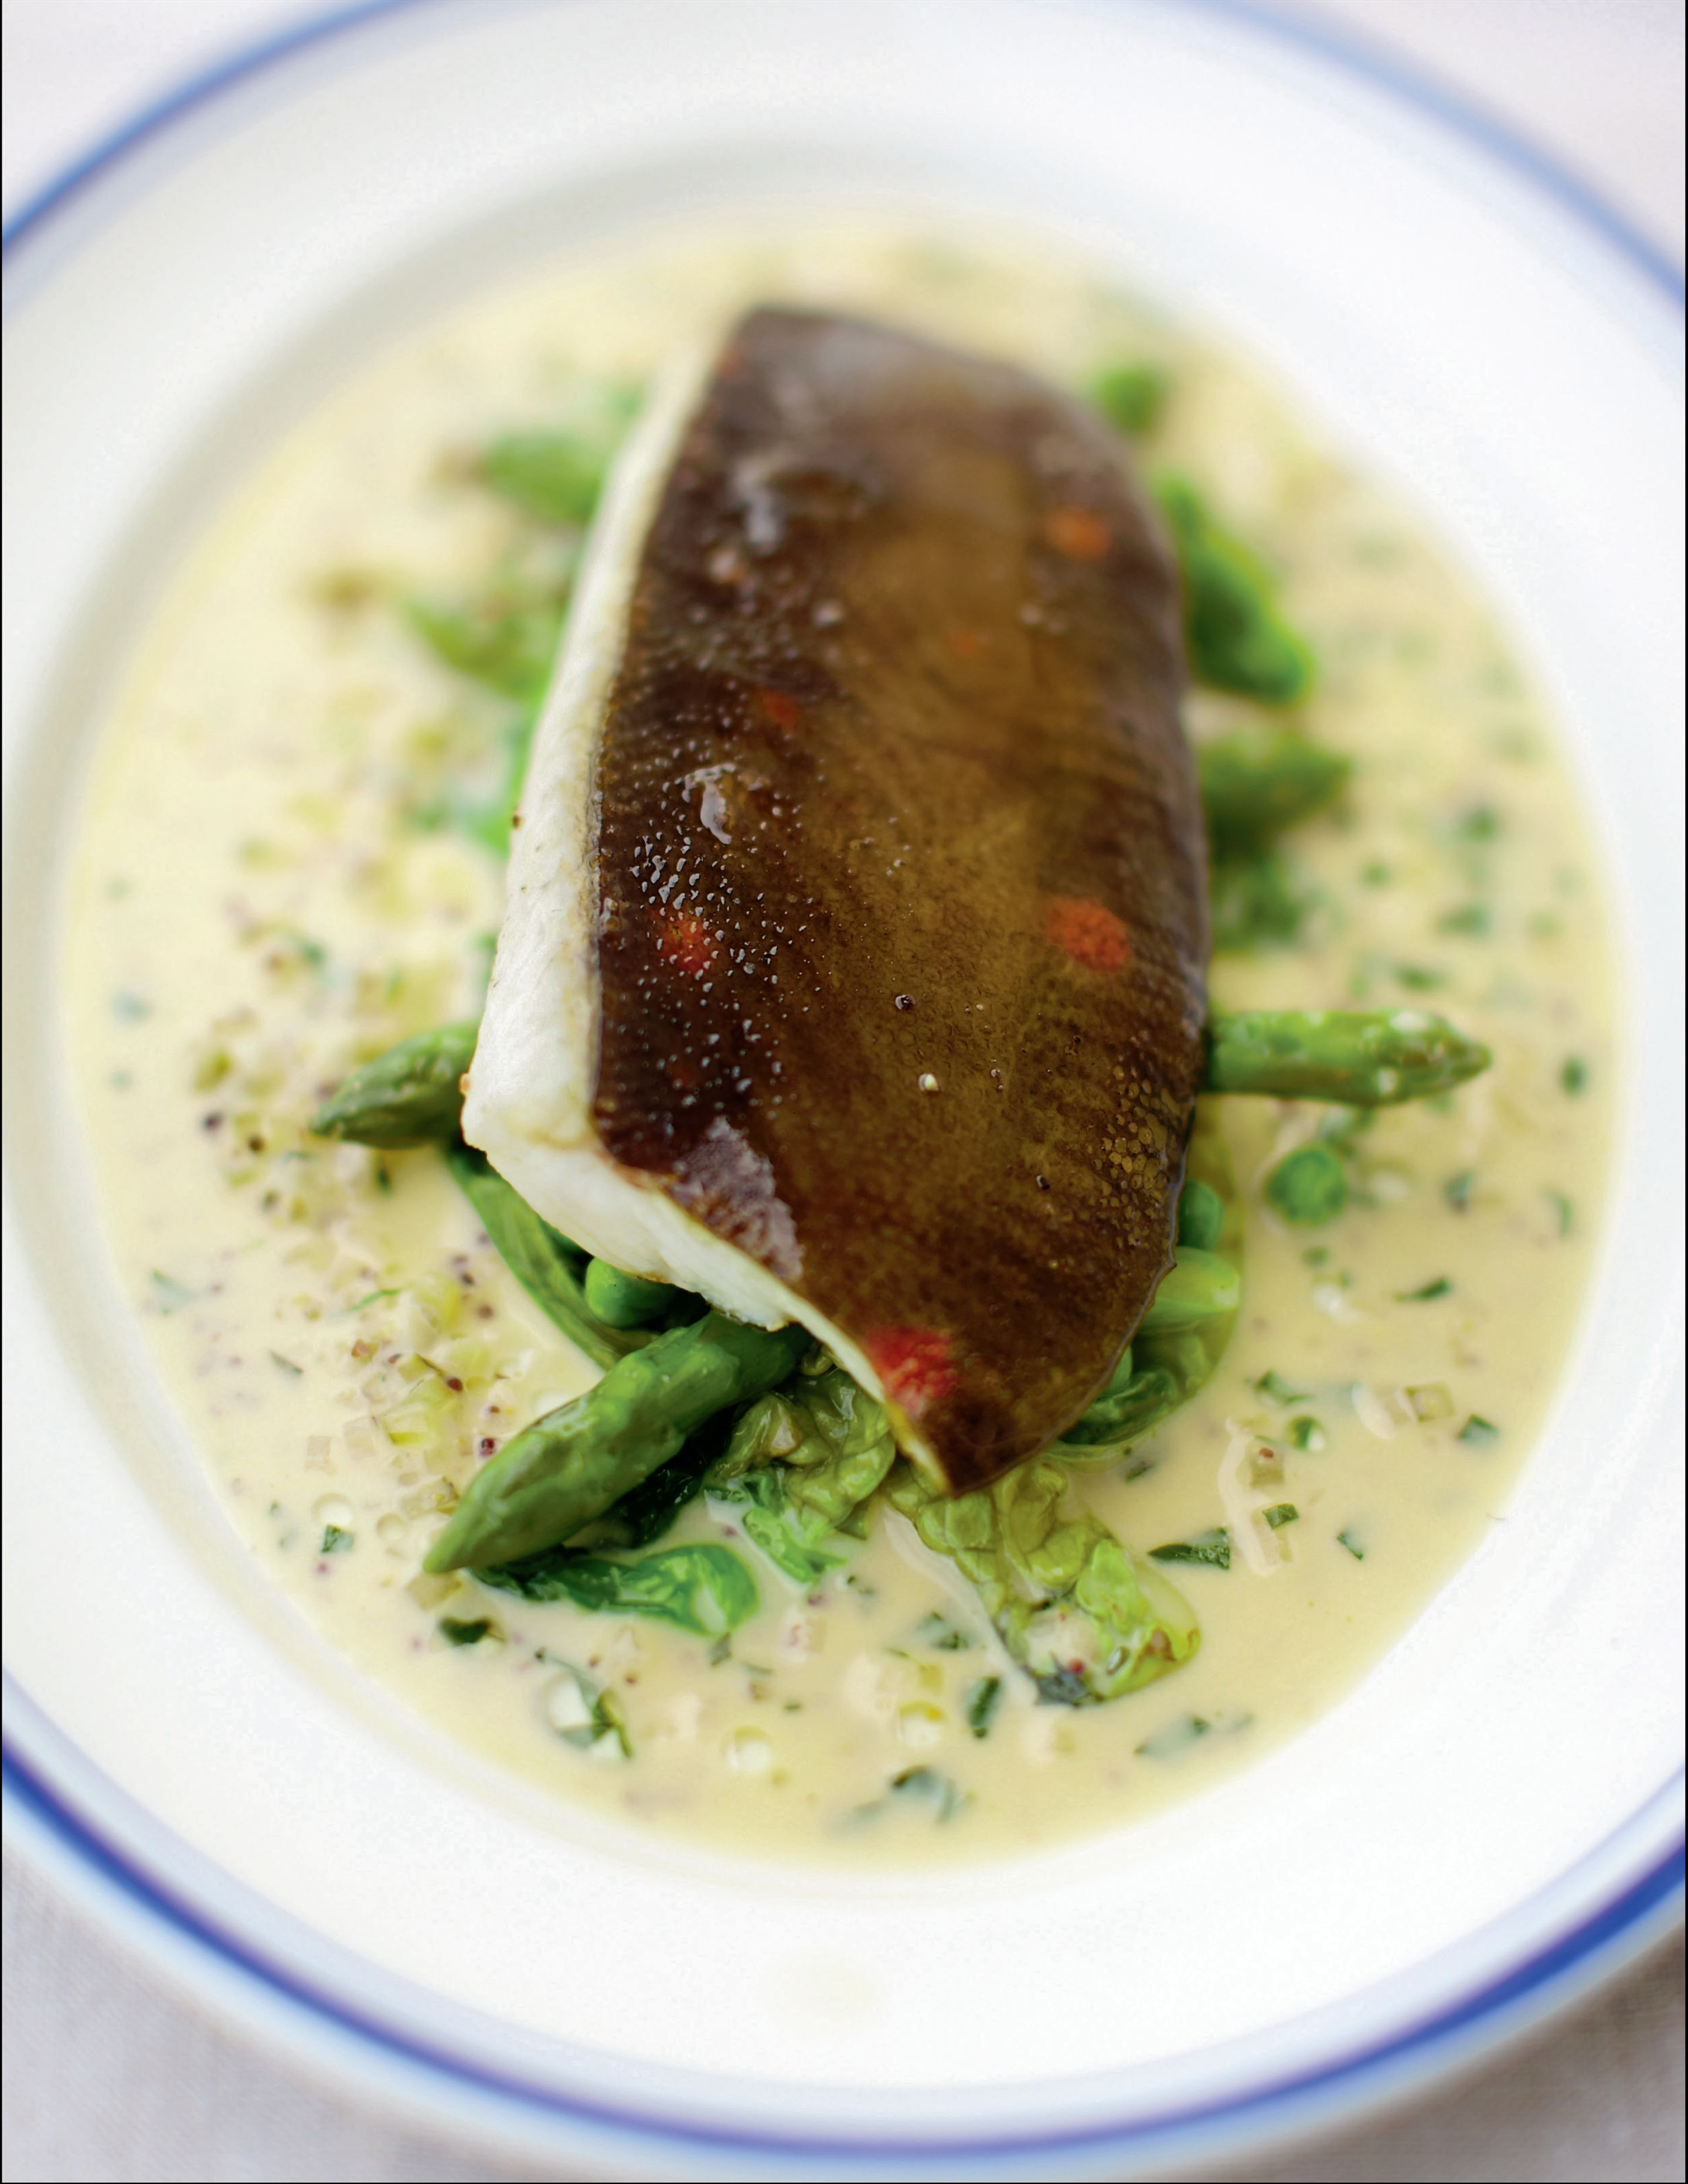 Grilled plaice with mustard and tarragon sauce, asparagus and peas